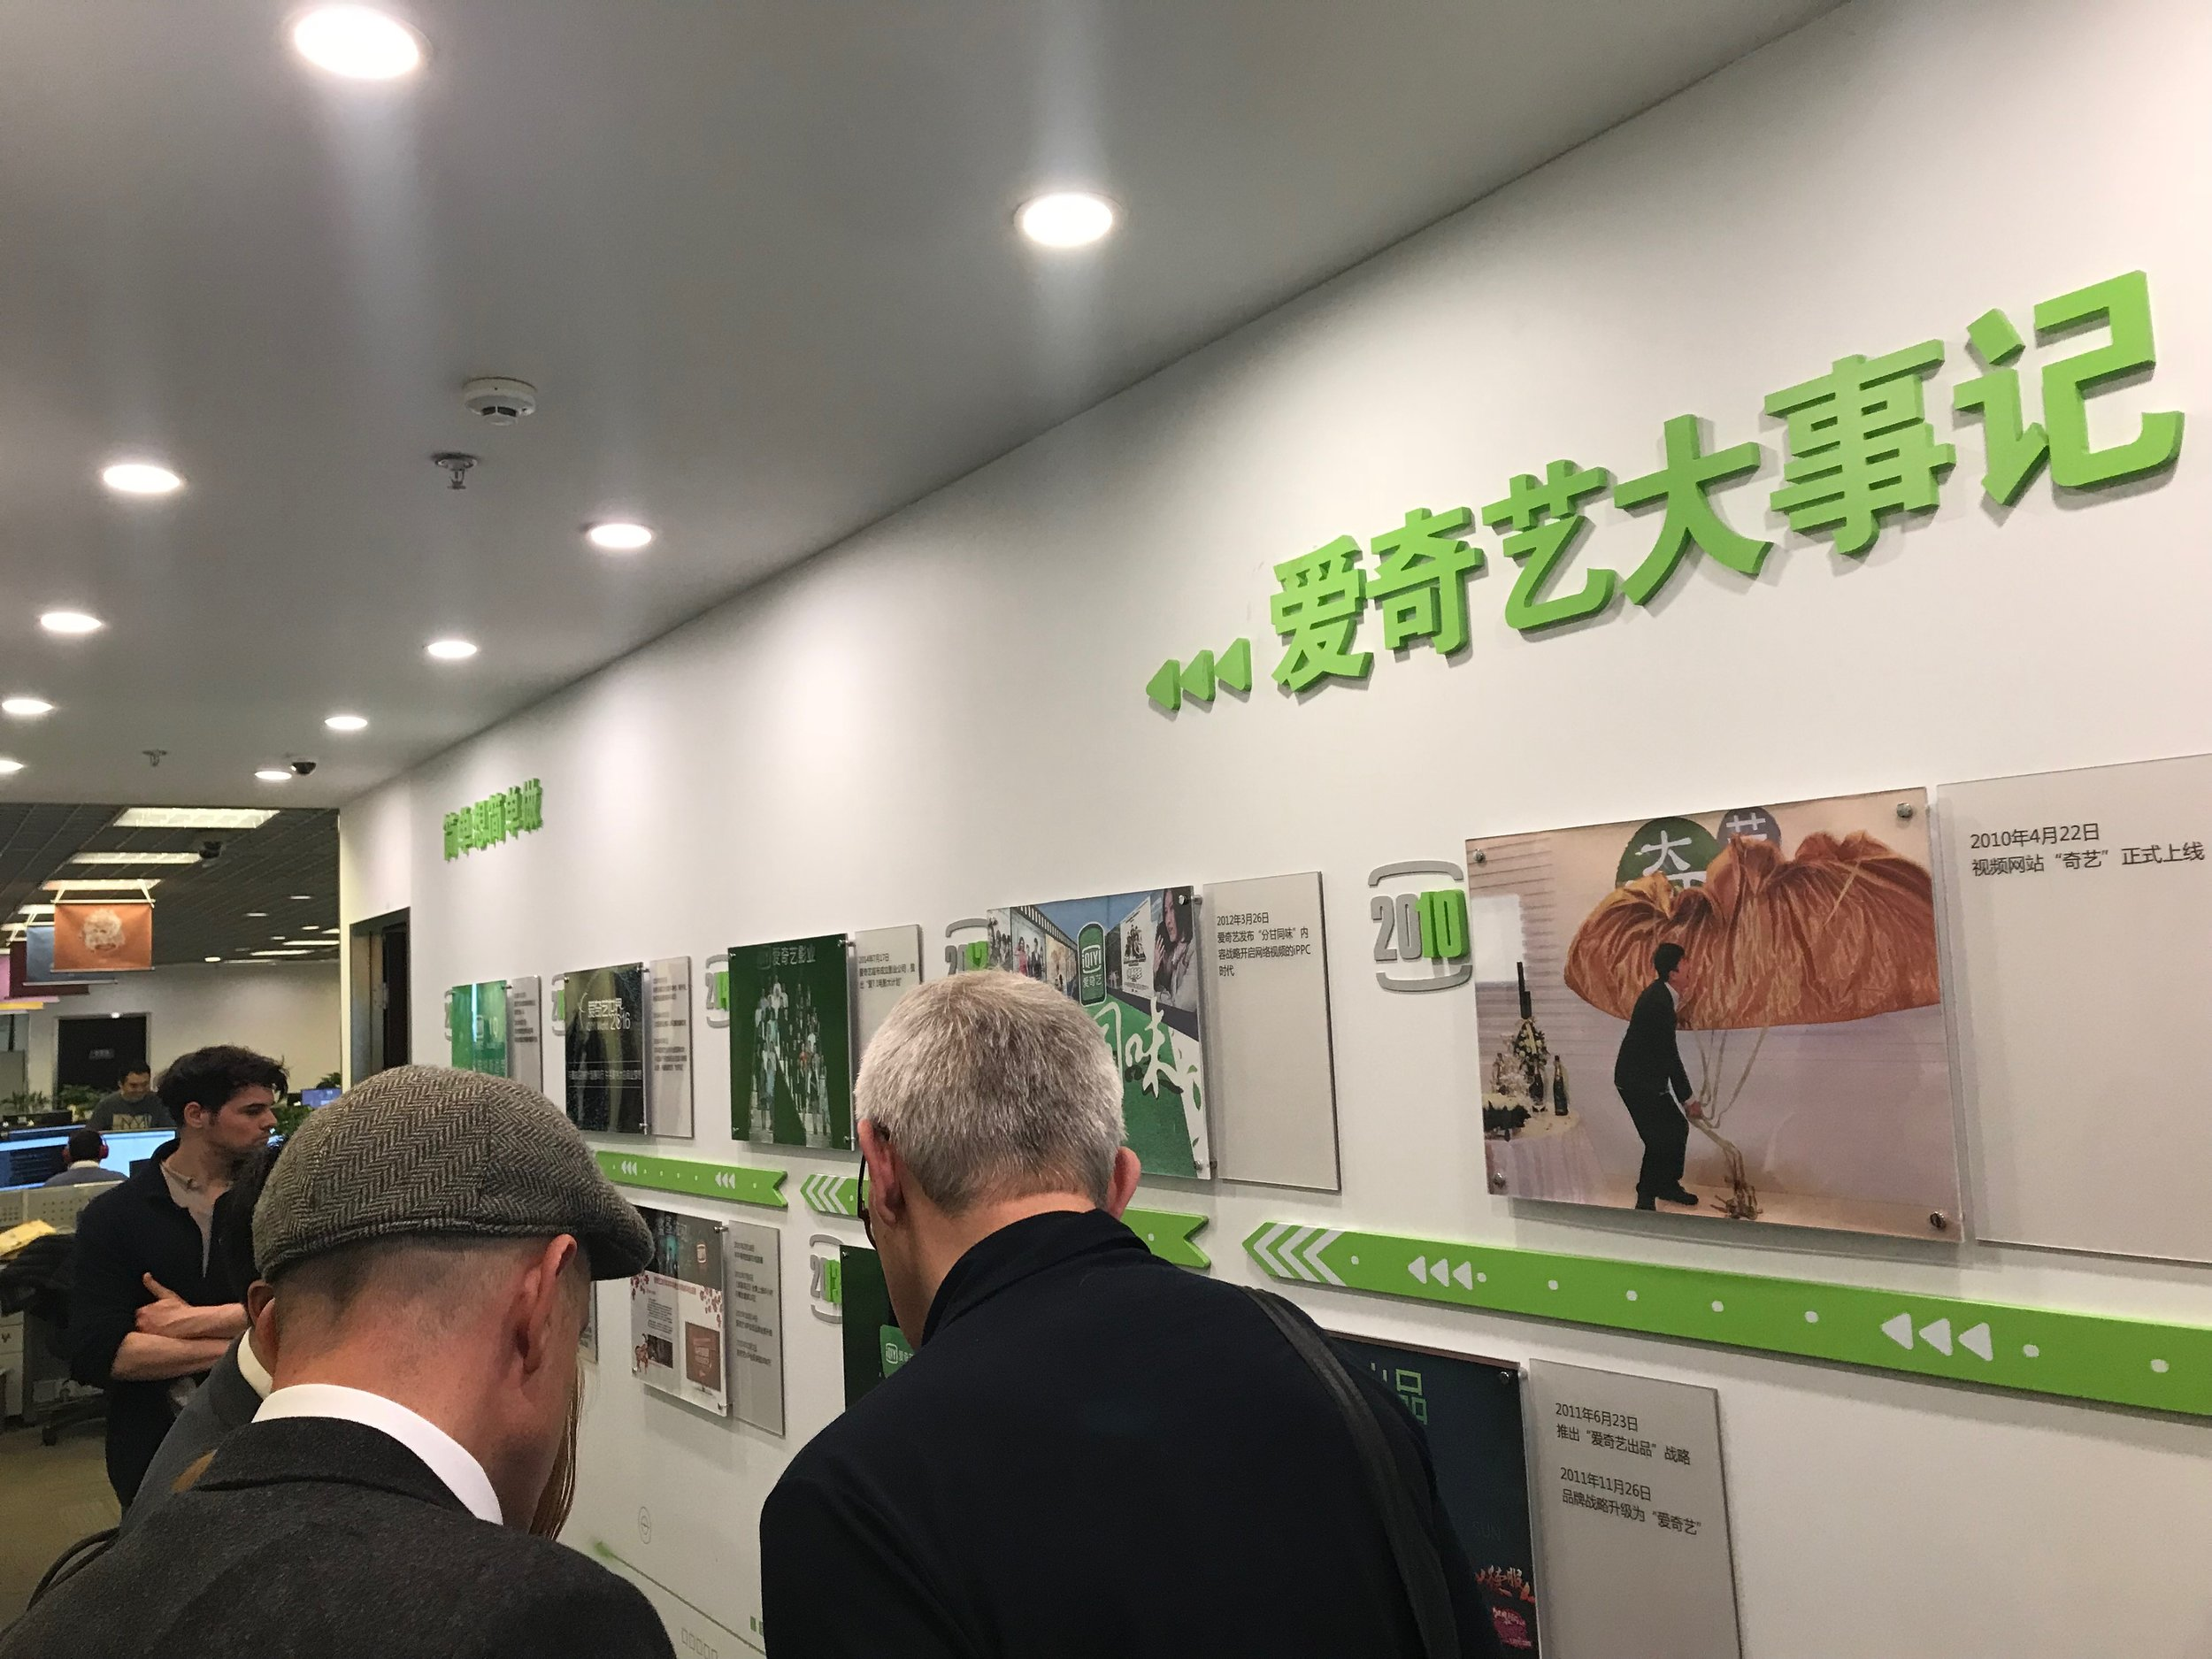 The Tamedia delegation was visiting the iQIYI exhibition wall in iQIYI 's HQ in Haidian, Beijing.